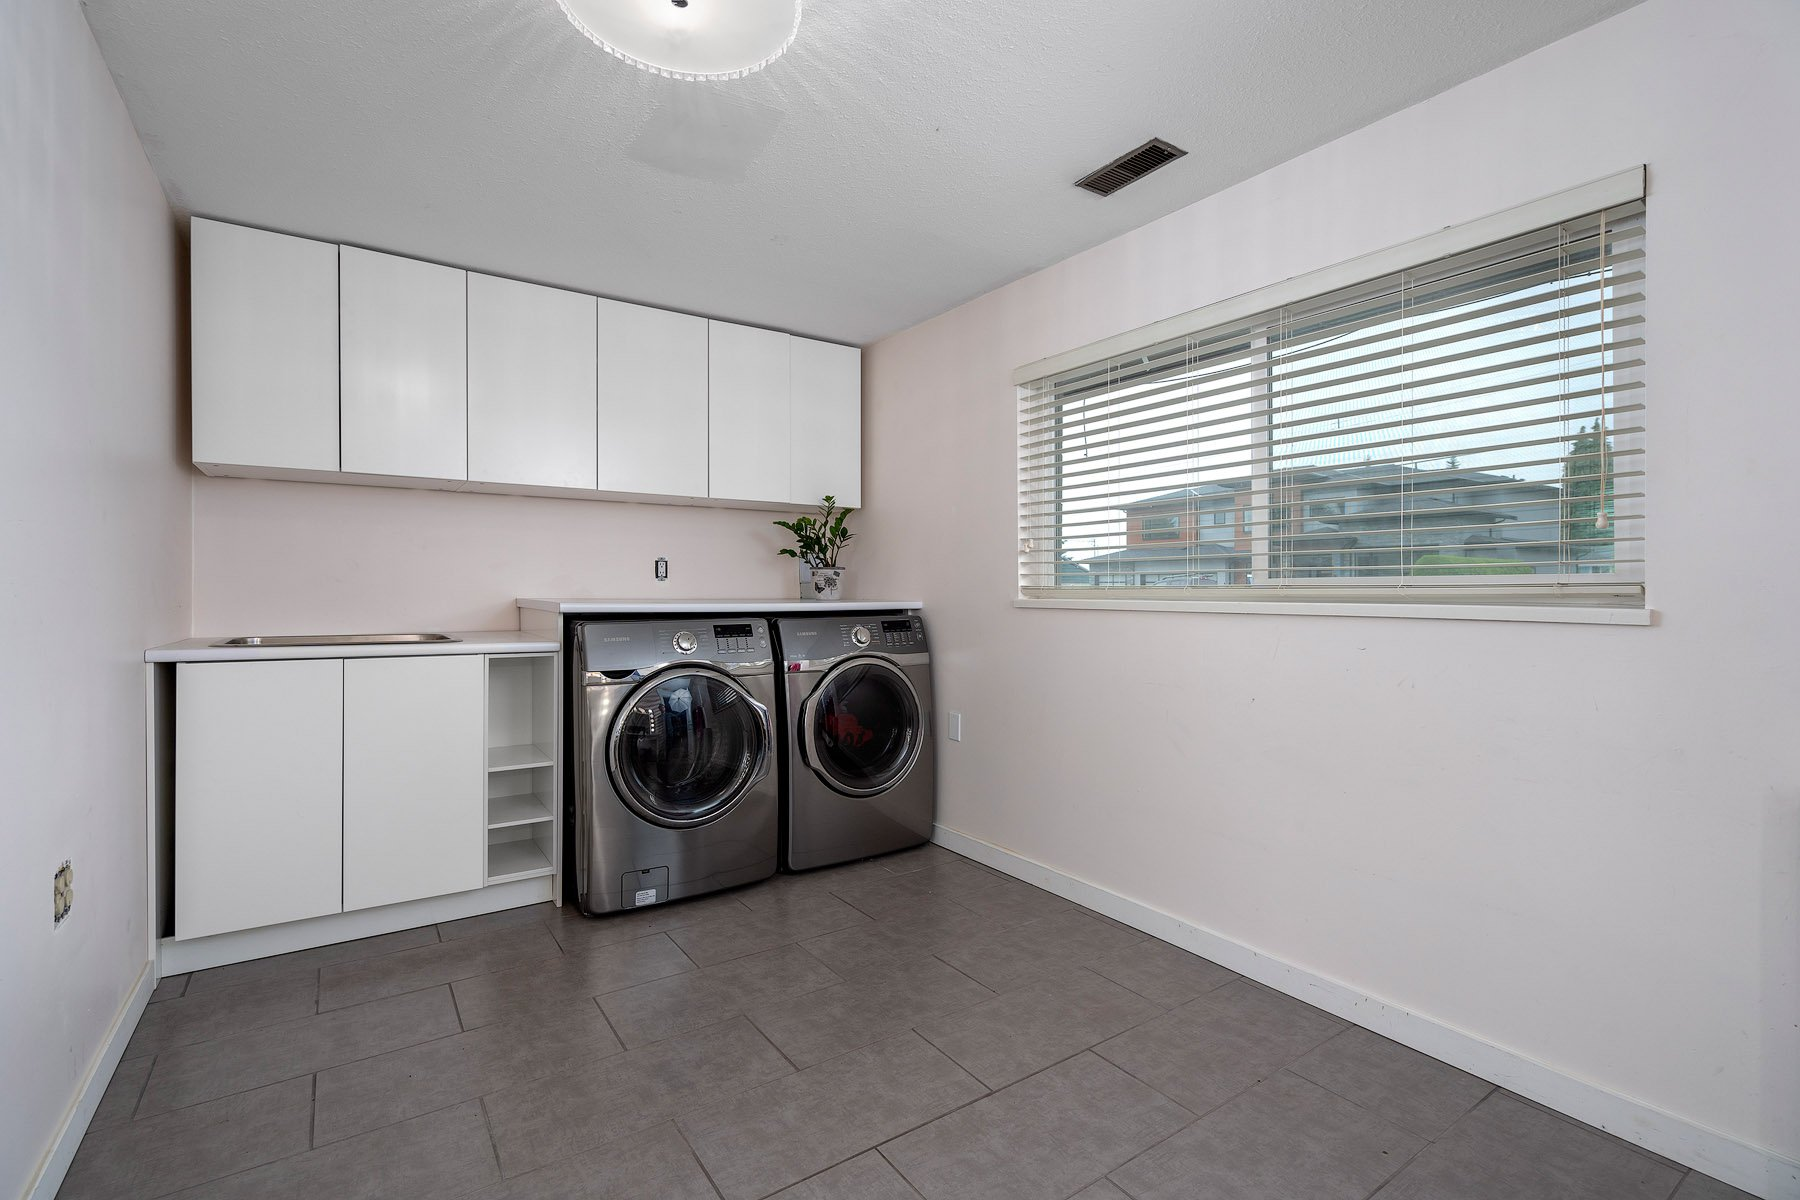 Photo 19: Photos: 423 MONTGOMERY Street in Coquitlam: Central Coquitlam House for sale : MLS®# R2380693